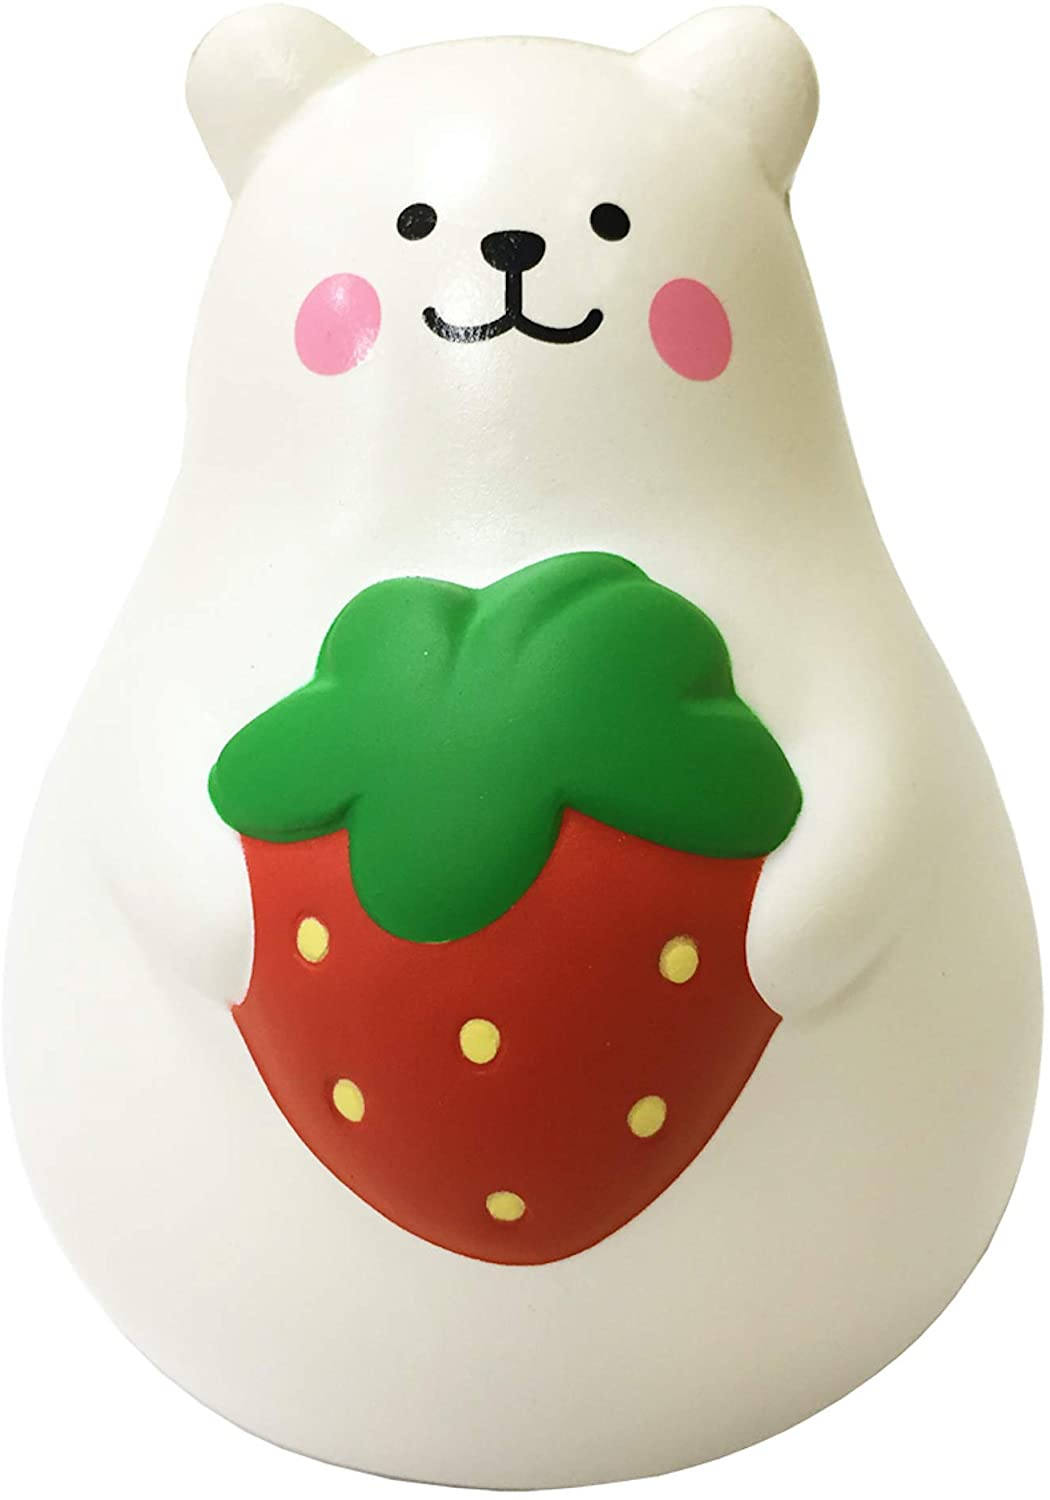 ibloom Marshmallow Bear Mr White Slow Rising Big Squishy Toy (Red Strawberry, 5.6 Inch) for Party Favors, Stress Balls, Birthday Gift Boxes